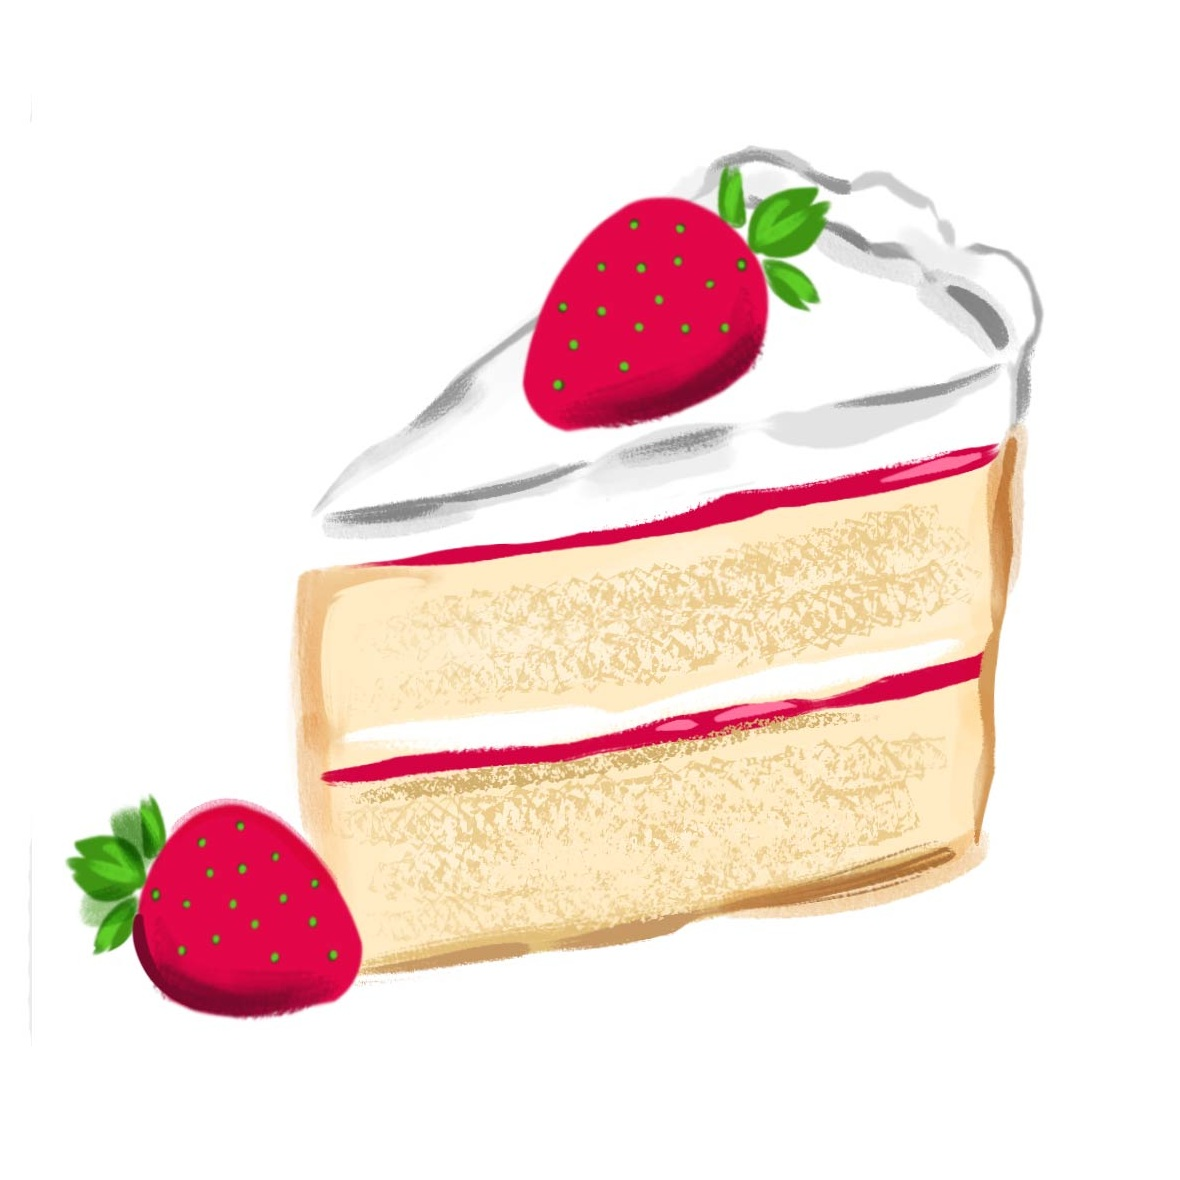 Dessert Illustration